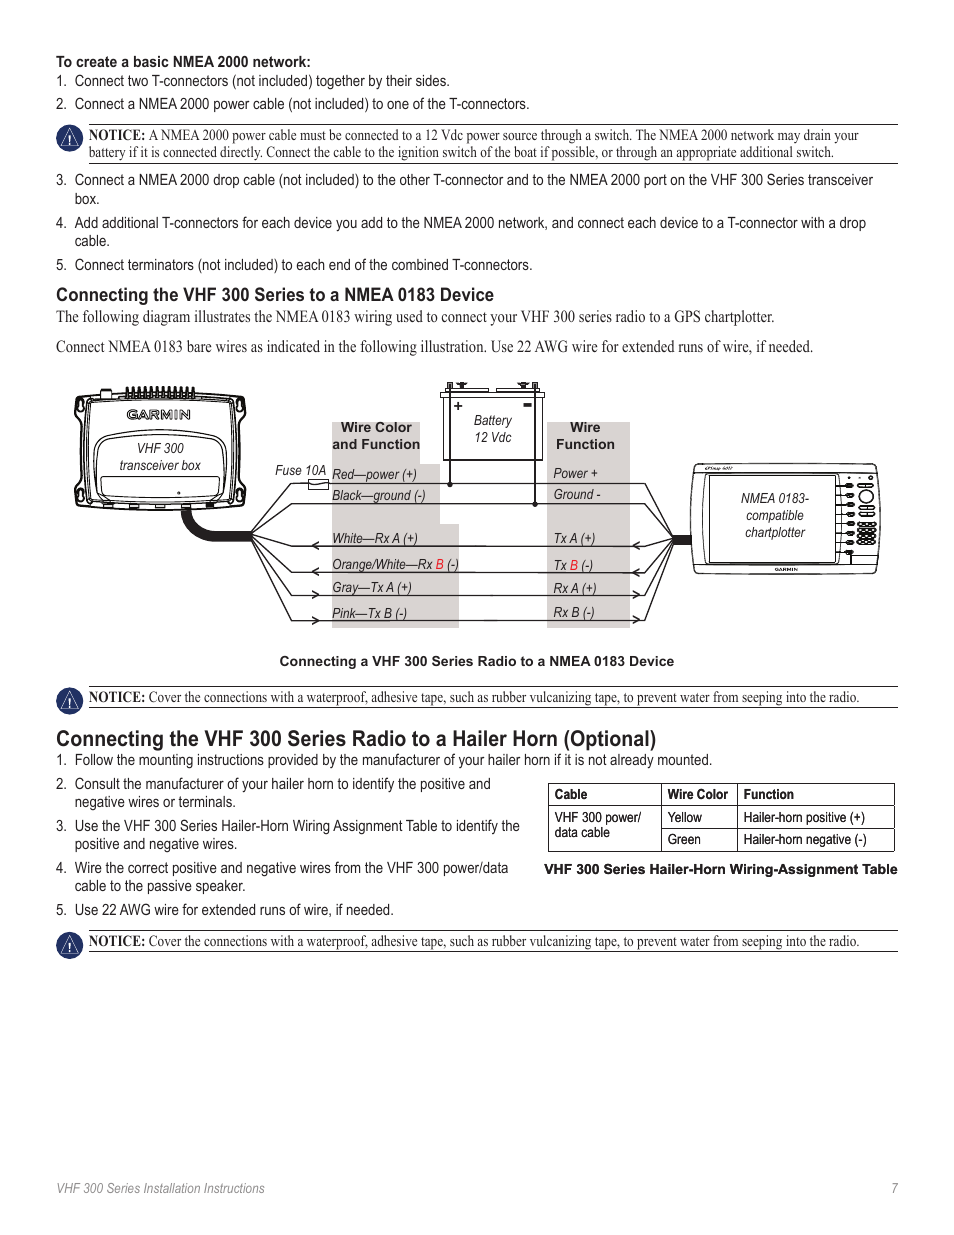 Connecting The Radio To A Hailer Horn Garmin Vhf Ghs 10i User Nmea Gps 0183 Wiring Diagram Manual Page 7 12